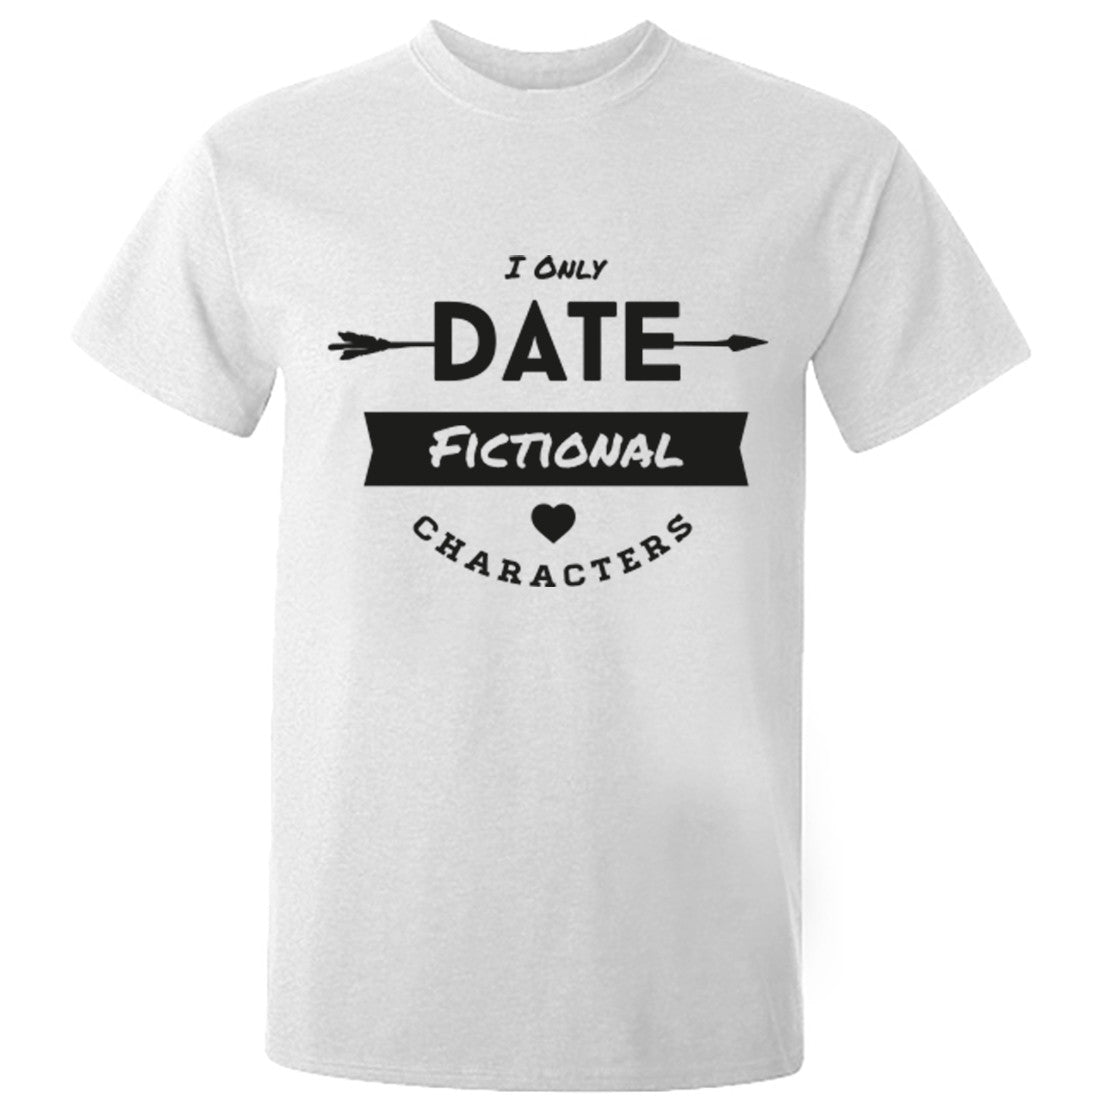 I Only Date Fictional Characters Unisex Fit T-Shirt K0697 - Illustrated Identity Ltd.